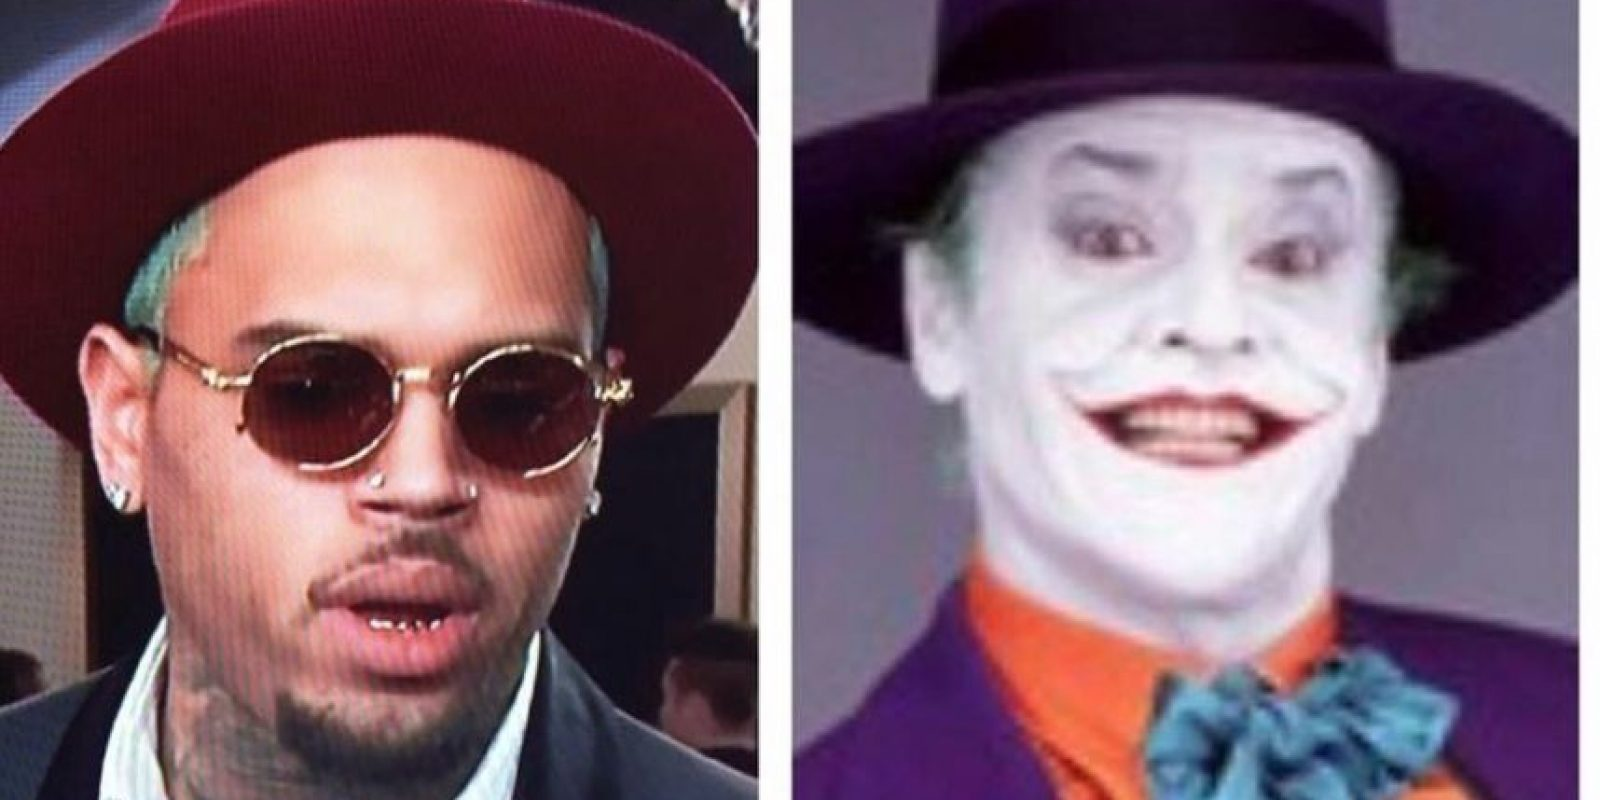 Chris Brown, comparado con el Joker. Foto: Twitter